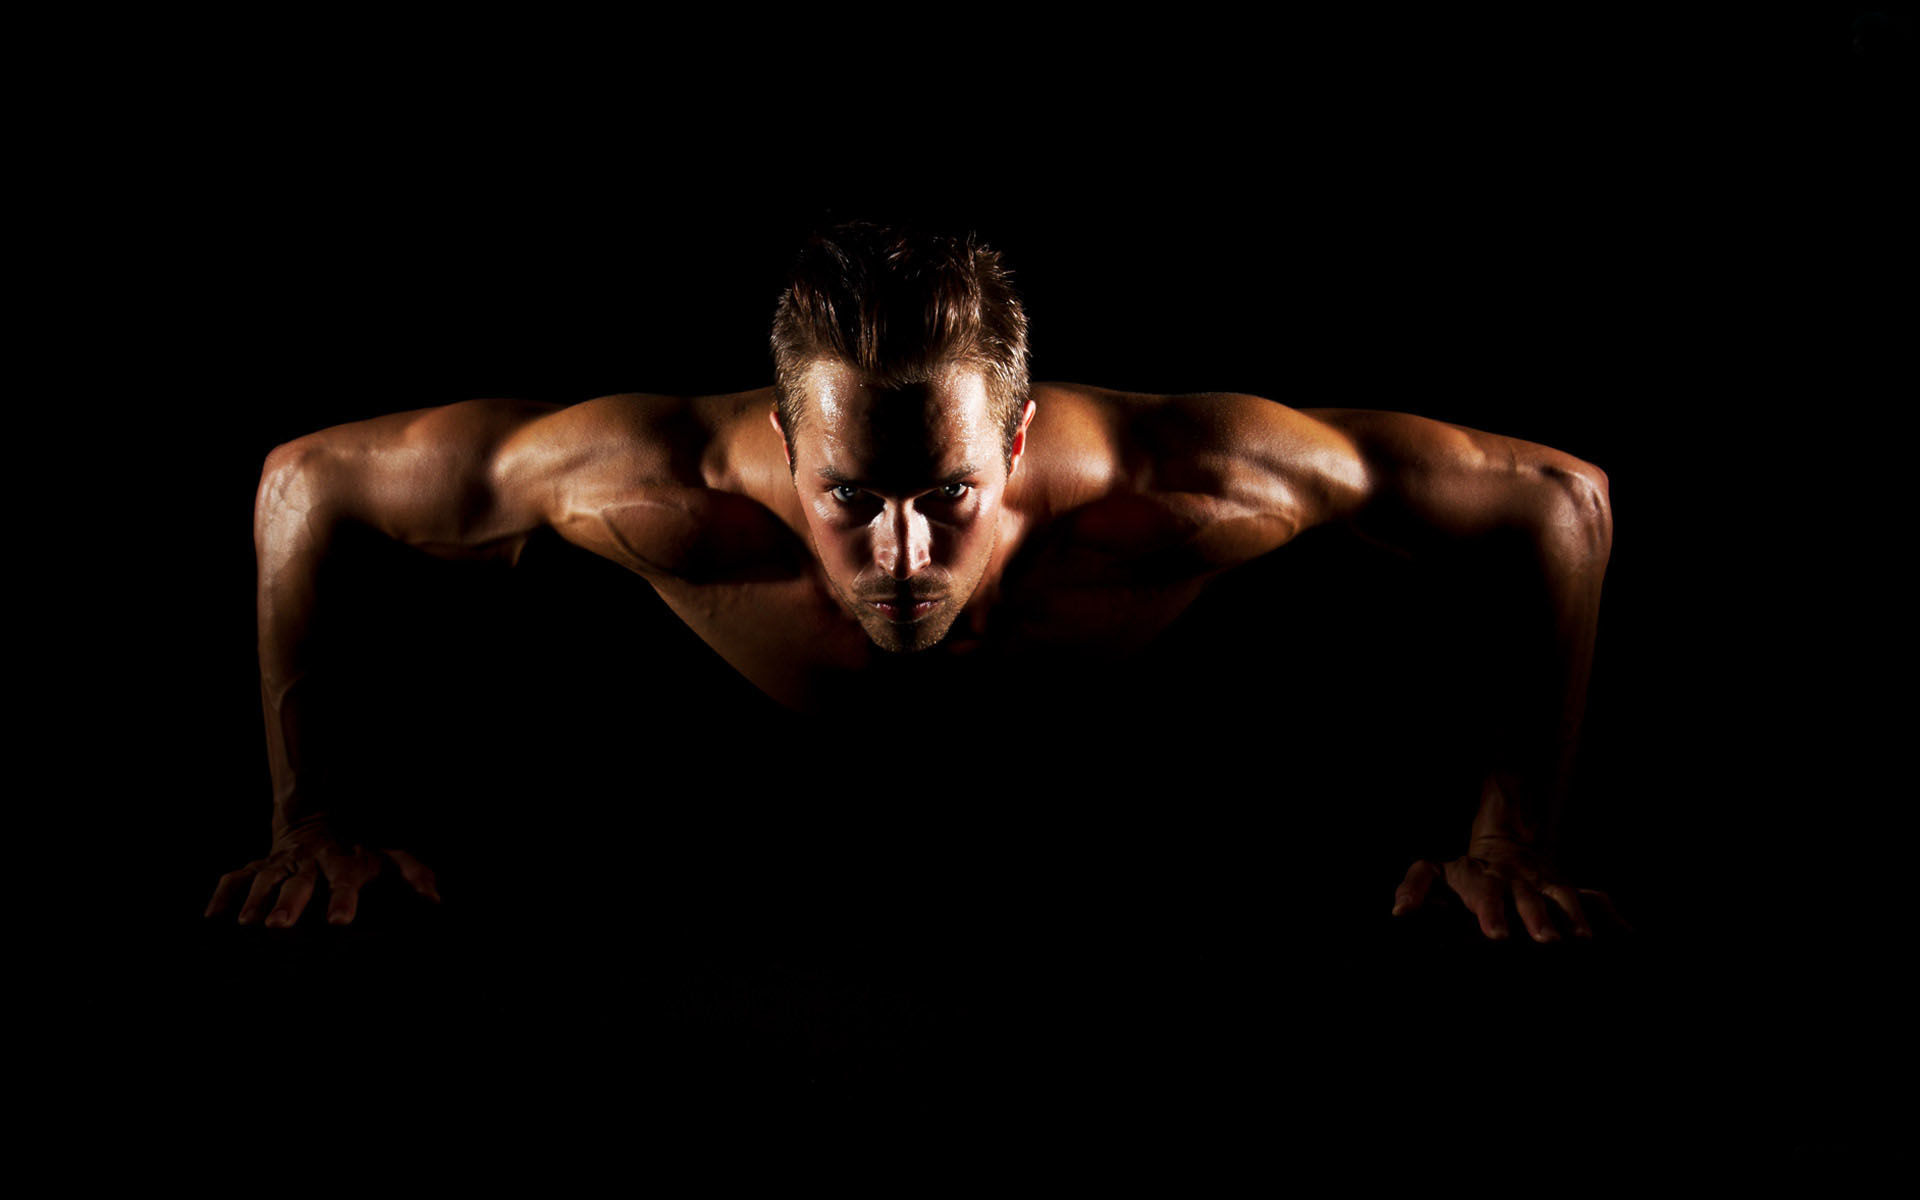 Bodybuilding Pictures & Images